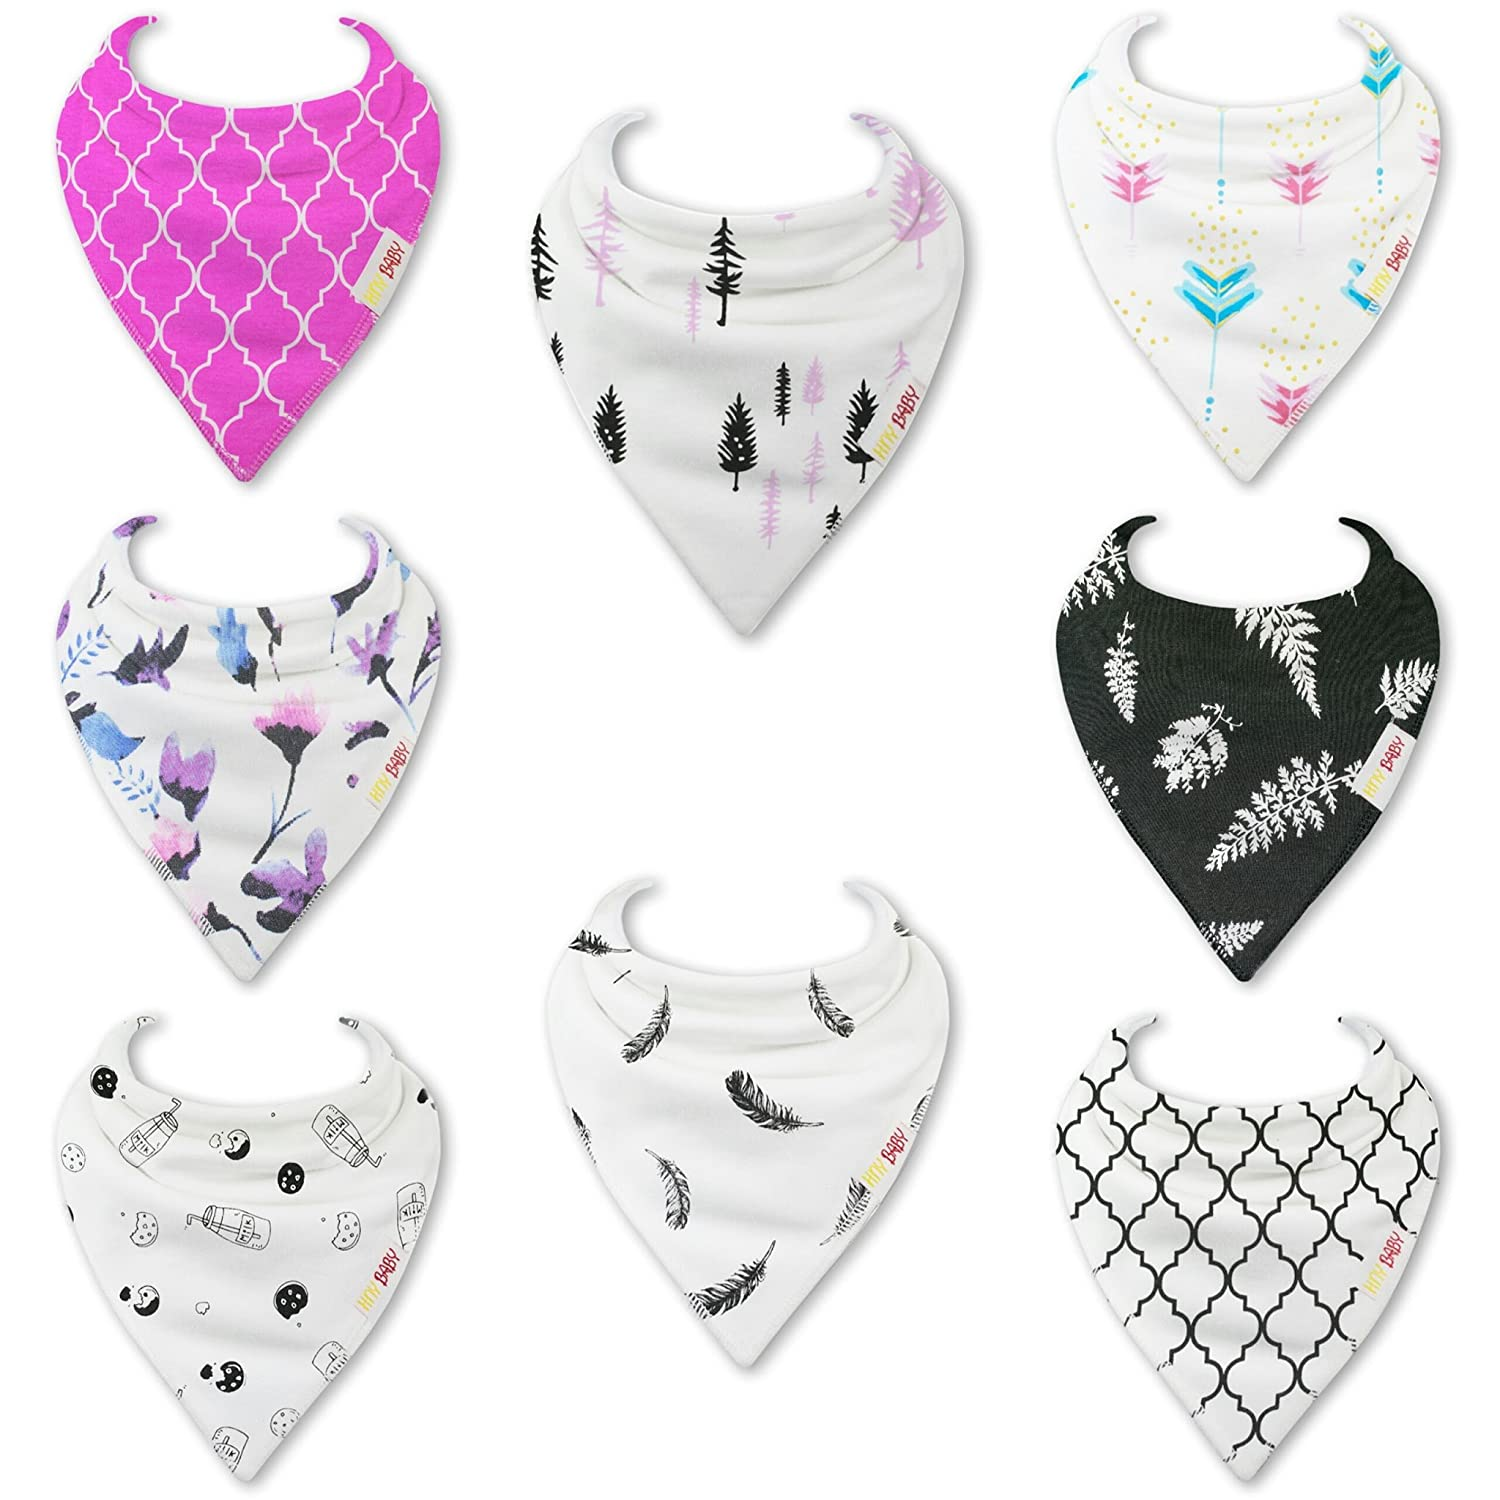 HnyBaby Baby Bandana Drool Bibs for Boys and Girls 8 Pack'Oreo and Blossom' Organic Cotton with Adjustable Snaps, Drooling and Teething Bib Unisex Gift Set